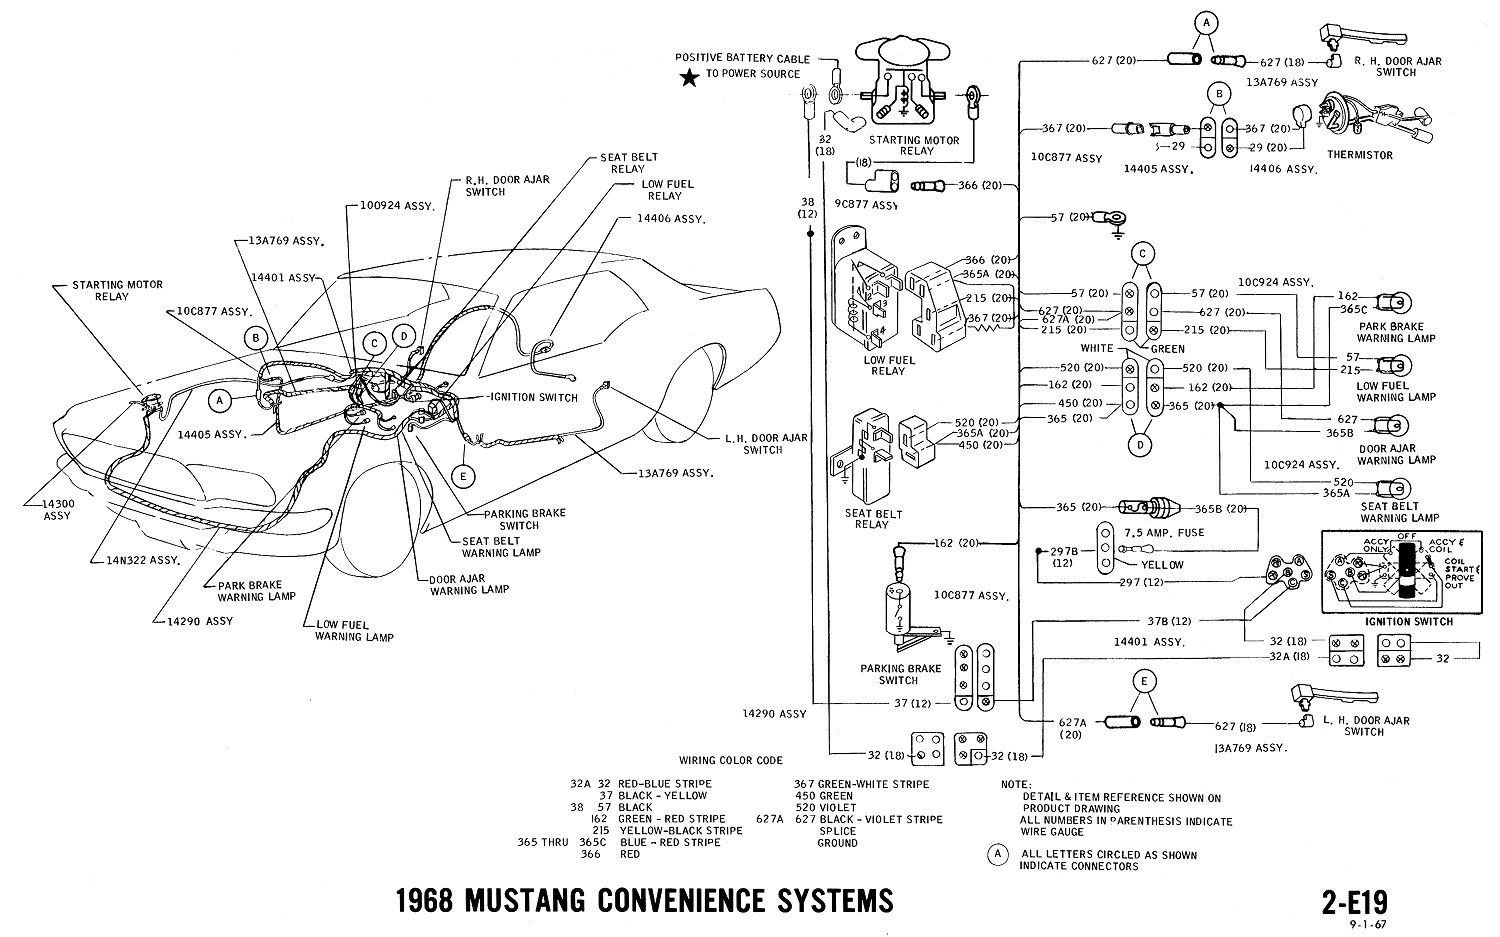 68 corvette wiring diagram power windows with 1967 Mustang Wiring And Vacuum Diagrams Average Joe Restoration on 1967 Mustang Wiring And Vacuum Diagrams Average Joe Restoration furthermore 76003 likewise 1964 1966 Thunderbirfd Wiring Schematic moreover